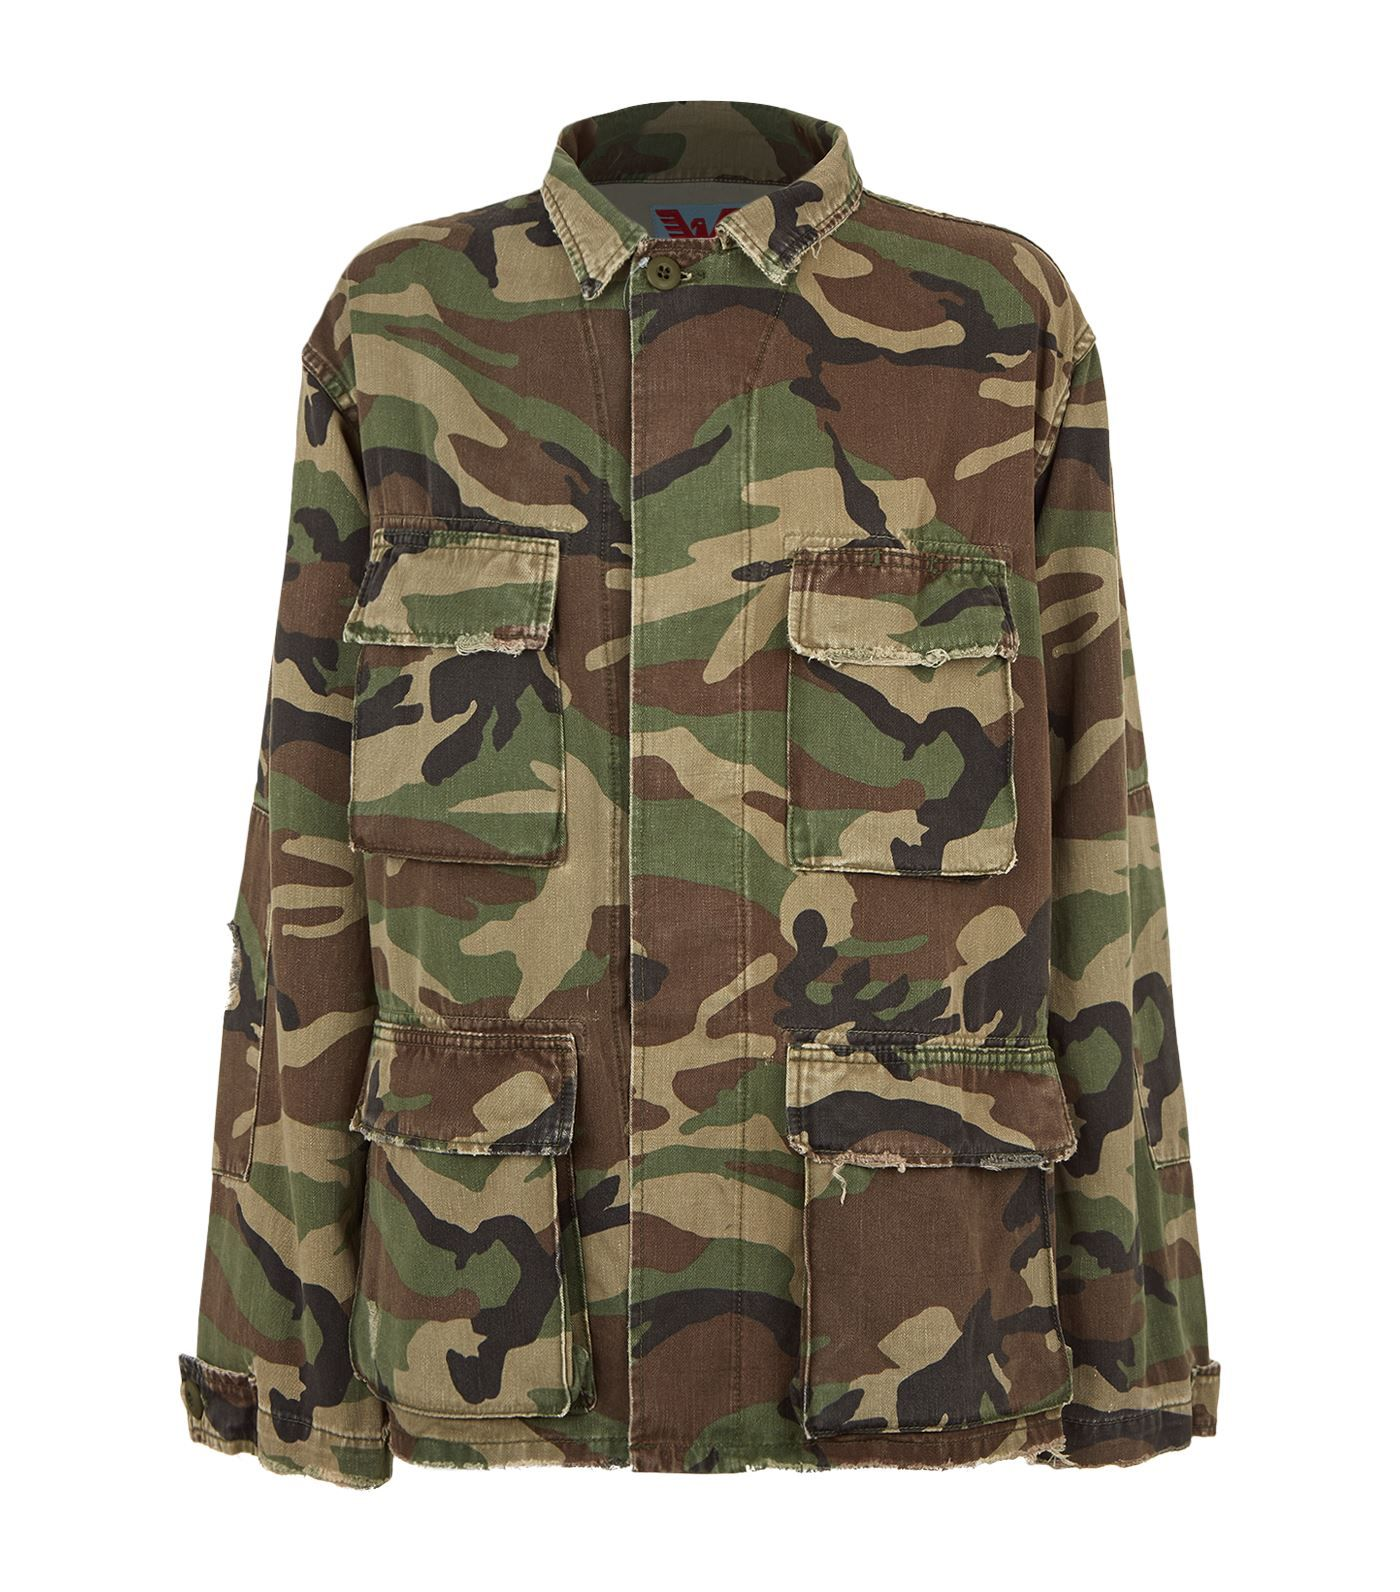 Adaptation Camouflage Army Jacket In Green | ModeSens | Army